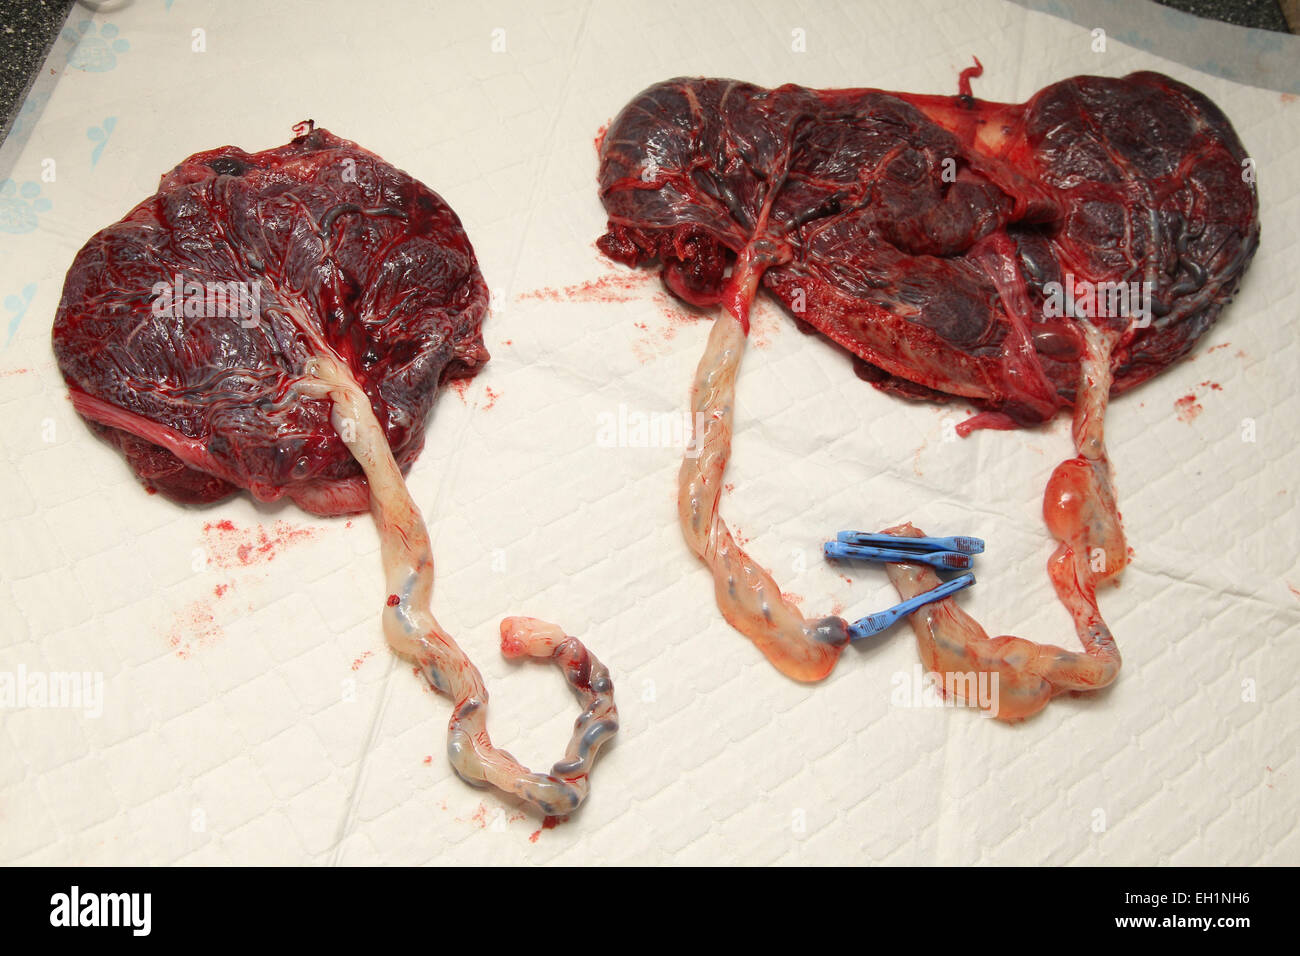 Placentas from triplets - one on right is from identical twins - about to be made into smoothie for mother to drink, - Stock Image